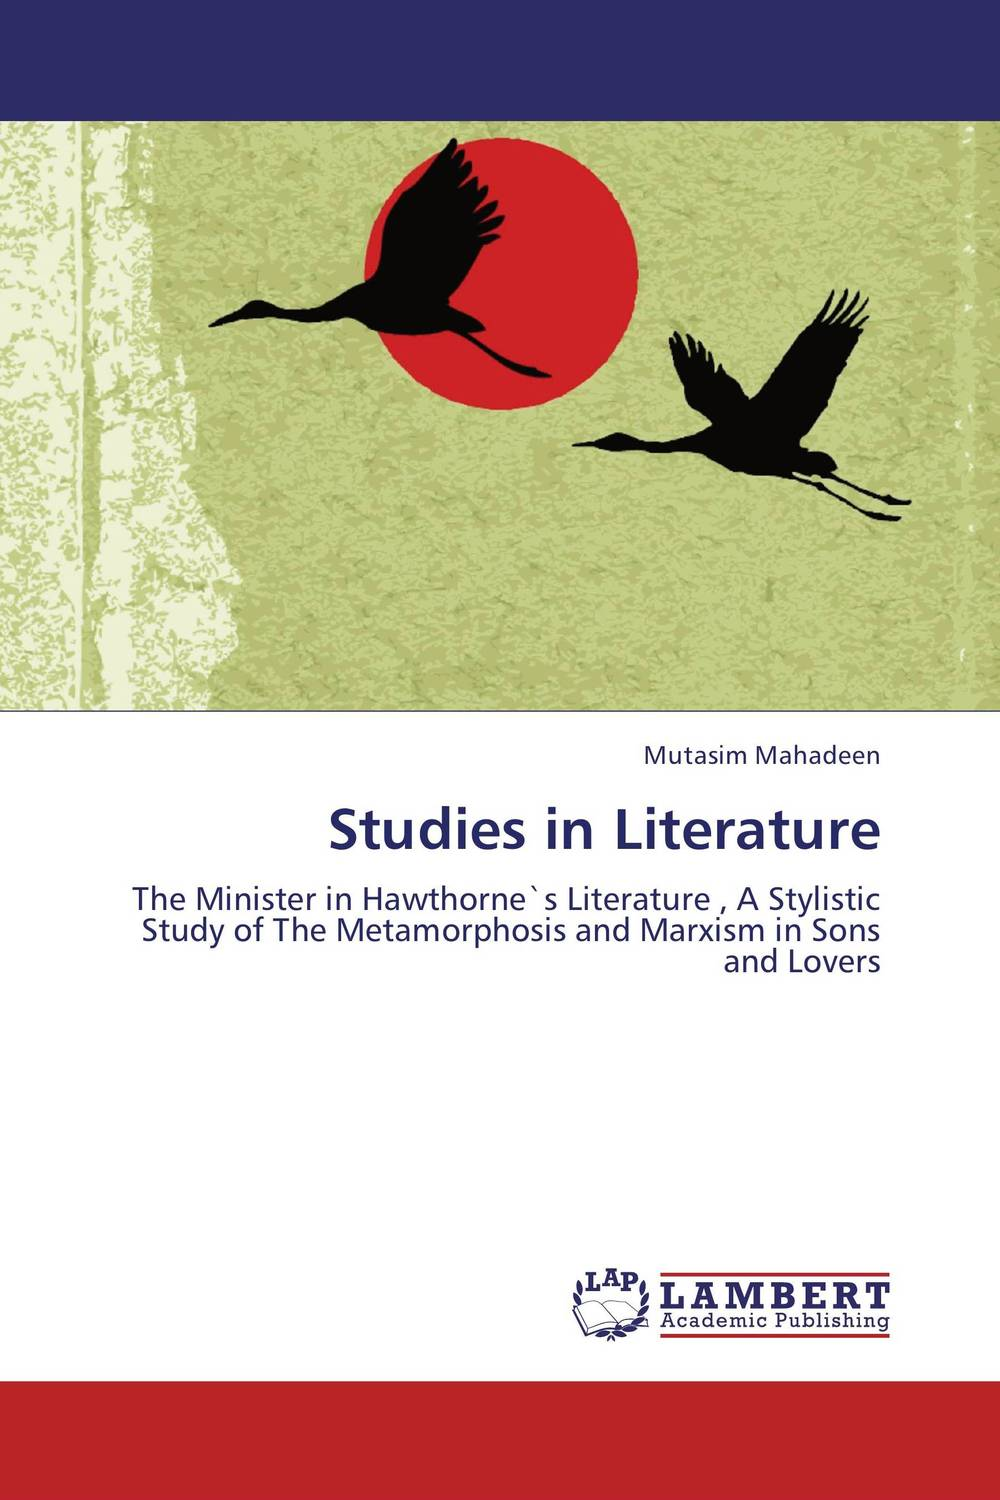 Studies in Literature studies in literature